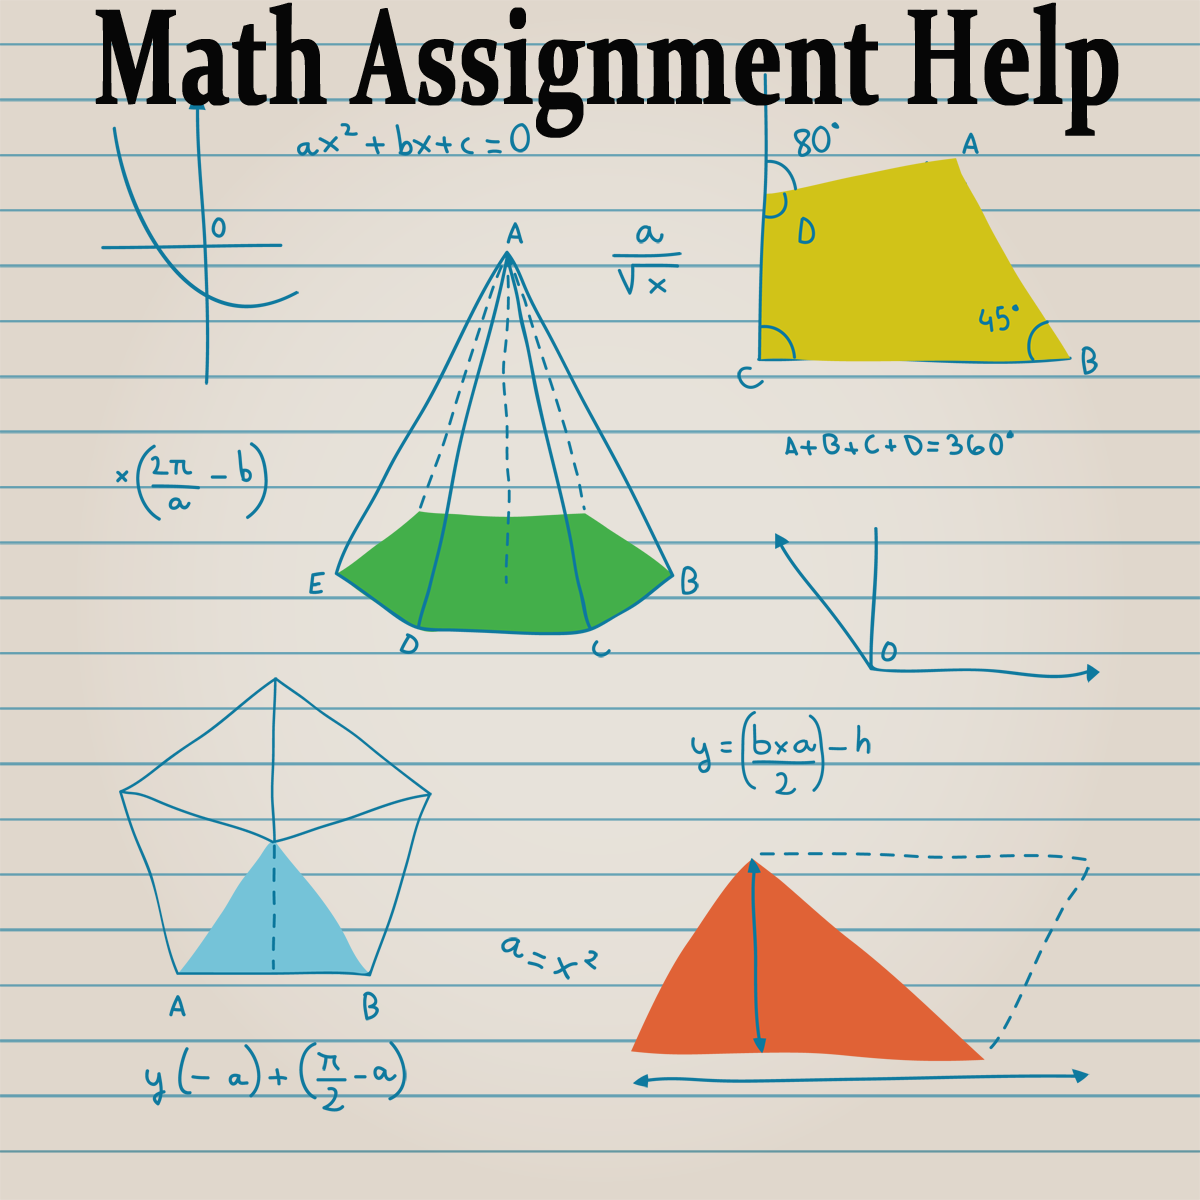 maths assignment help online in usa offline online assignment help  maths assignment help online in usa offline online assignment help we have started providing online